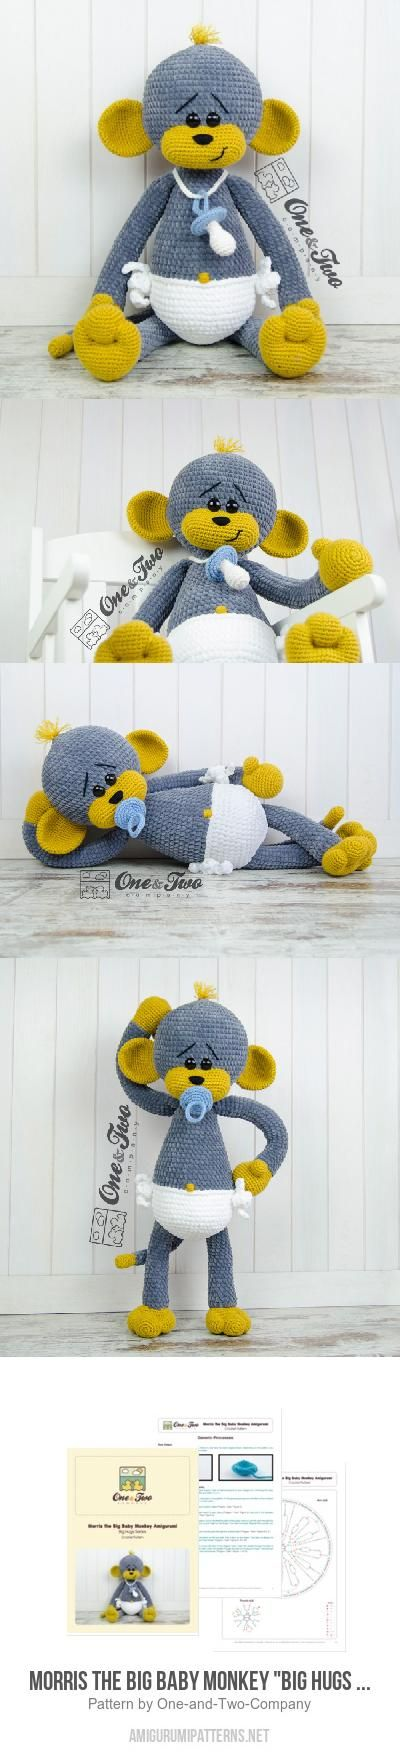 "Morris the Big Baby Monkey ""Big Hugs Series"" amigurumi pattern"